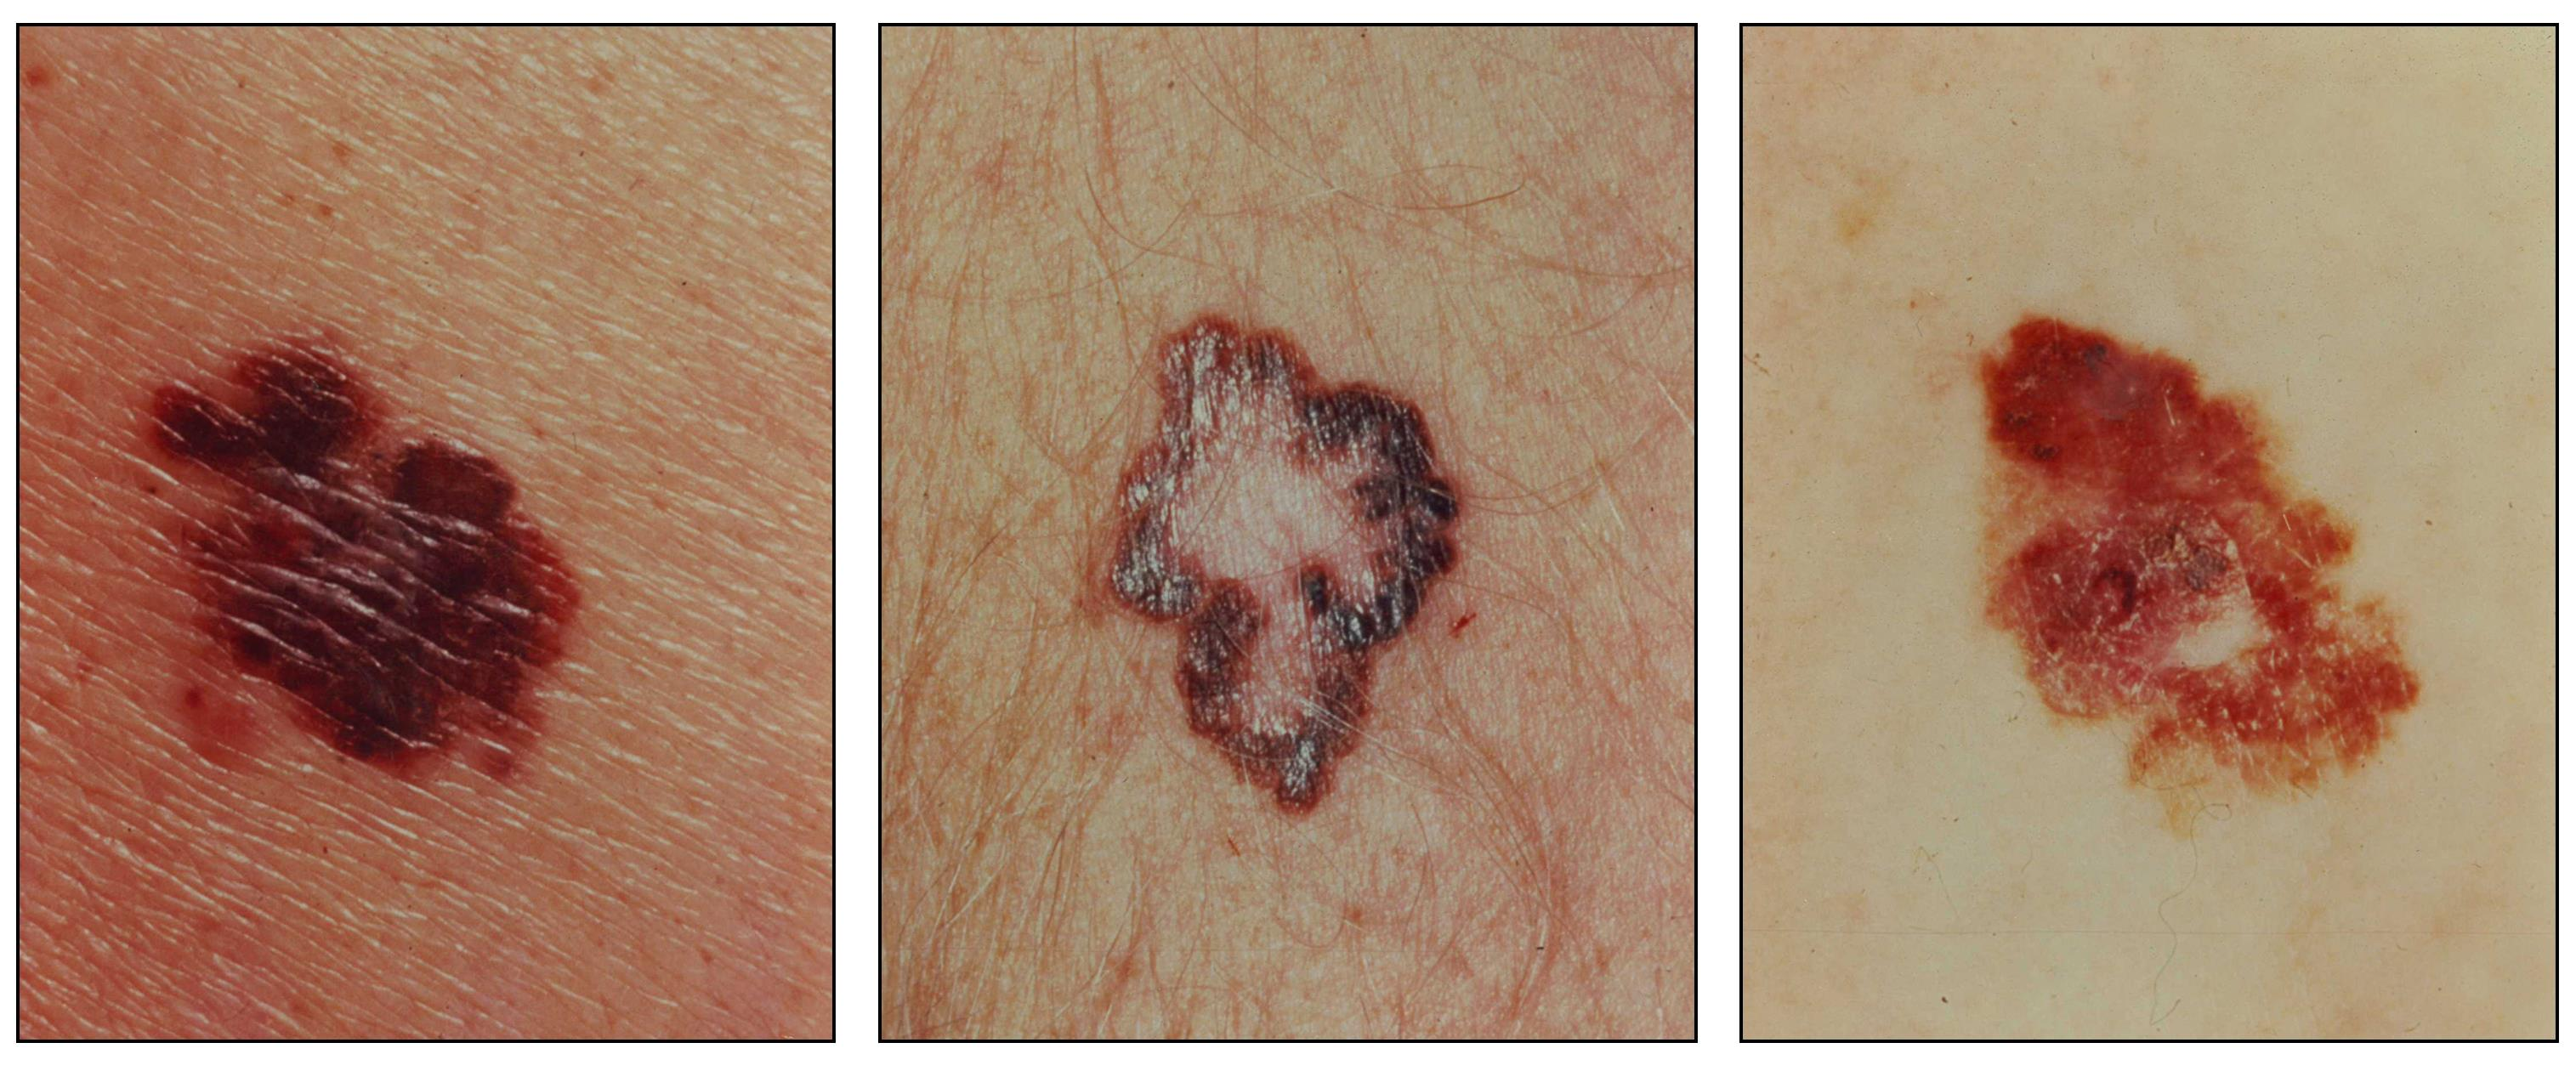 melanoma treatment (pdq®)—health professional version - national